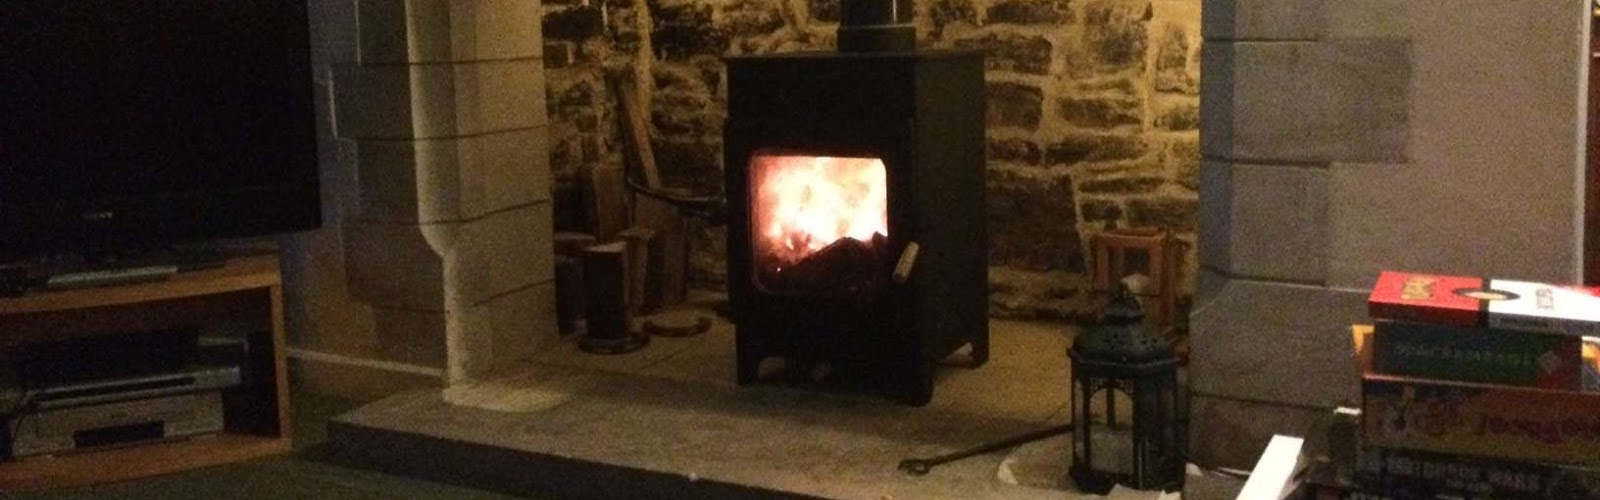 Wood Burning Stove In Dorset